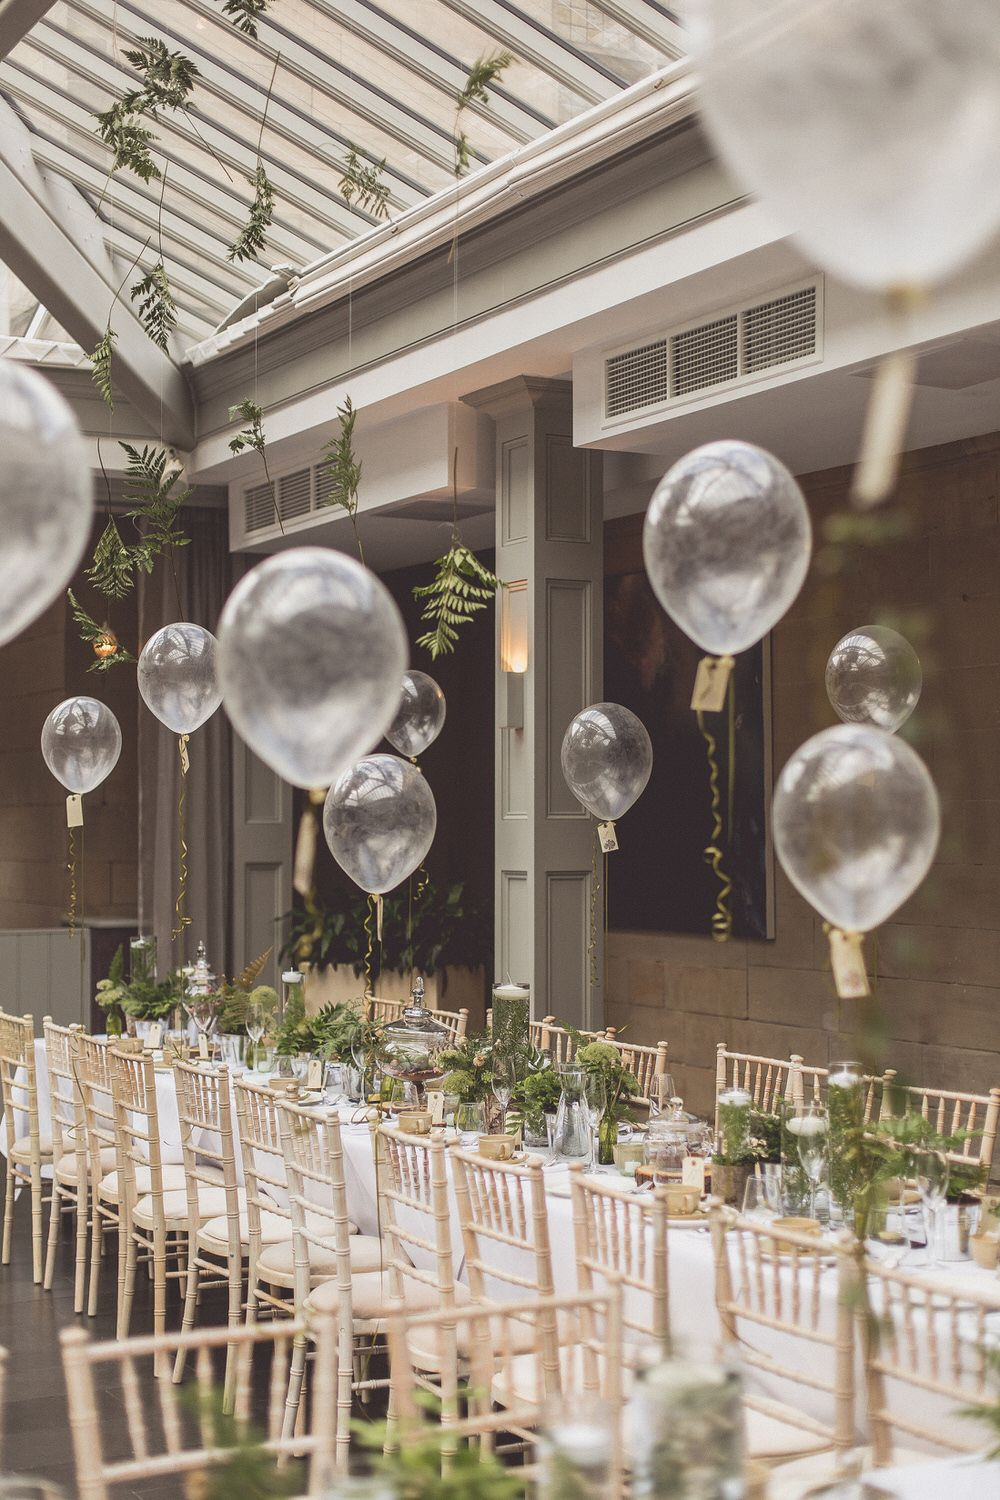 Party idea oxford event hire also teddy bears picnic inspiration events indoor ideas rh pinterest